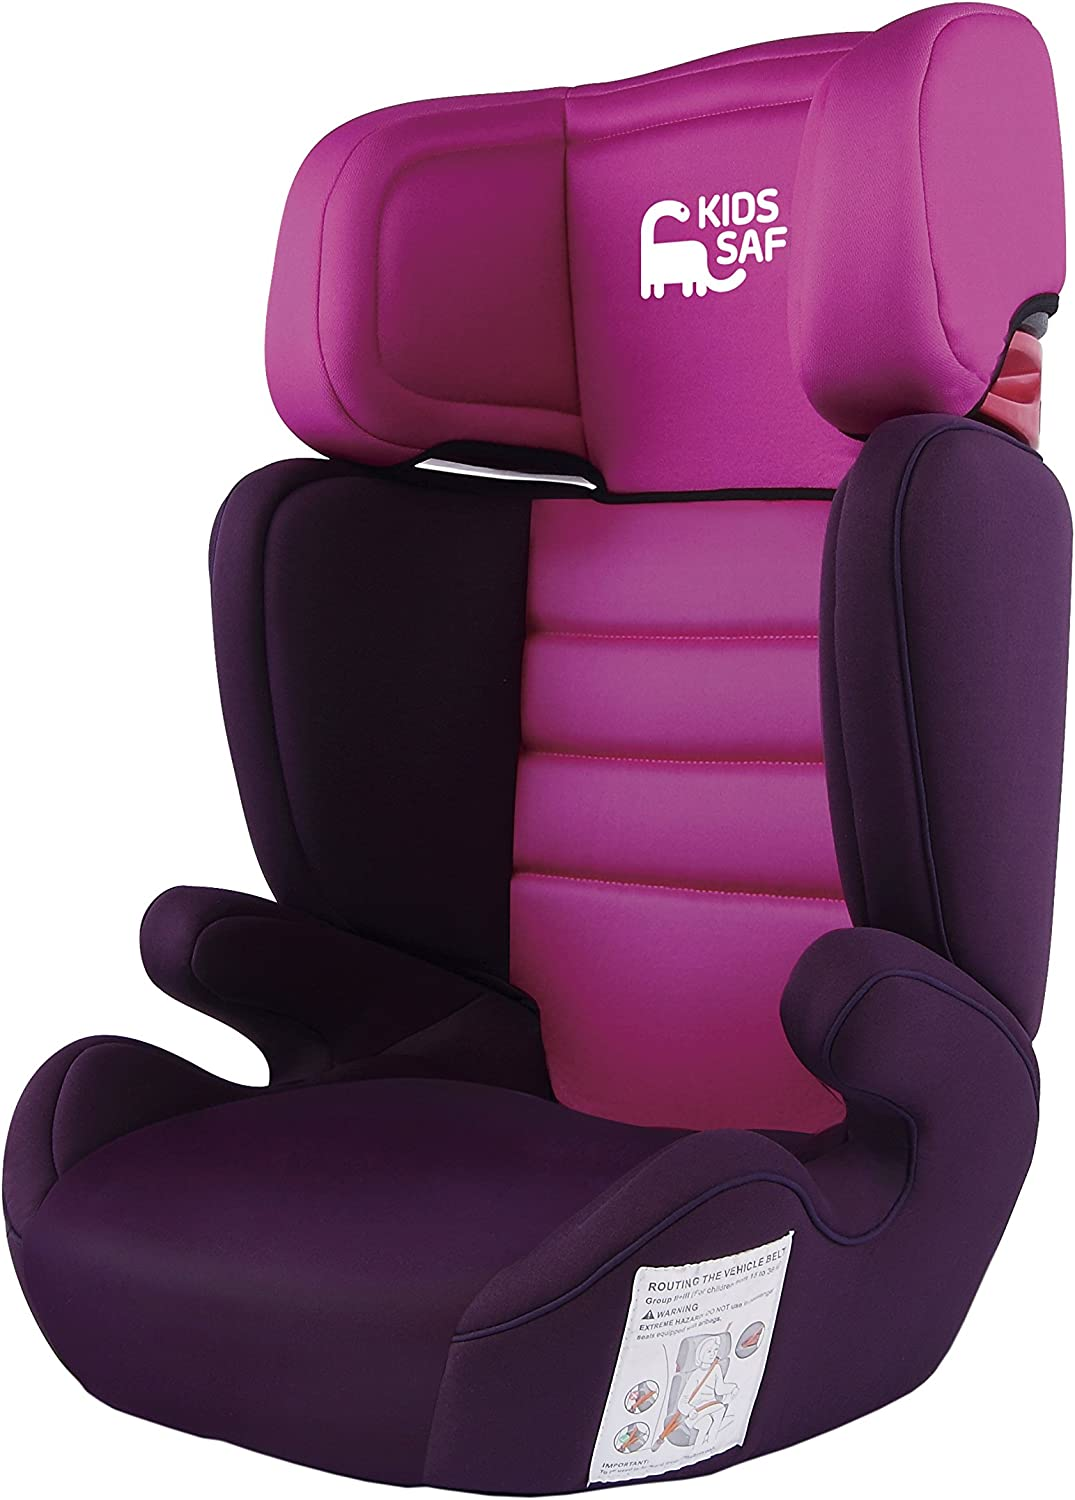 Grupo 2 Kids Safe KS700PK Silla KS700 Color Rosa 3